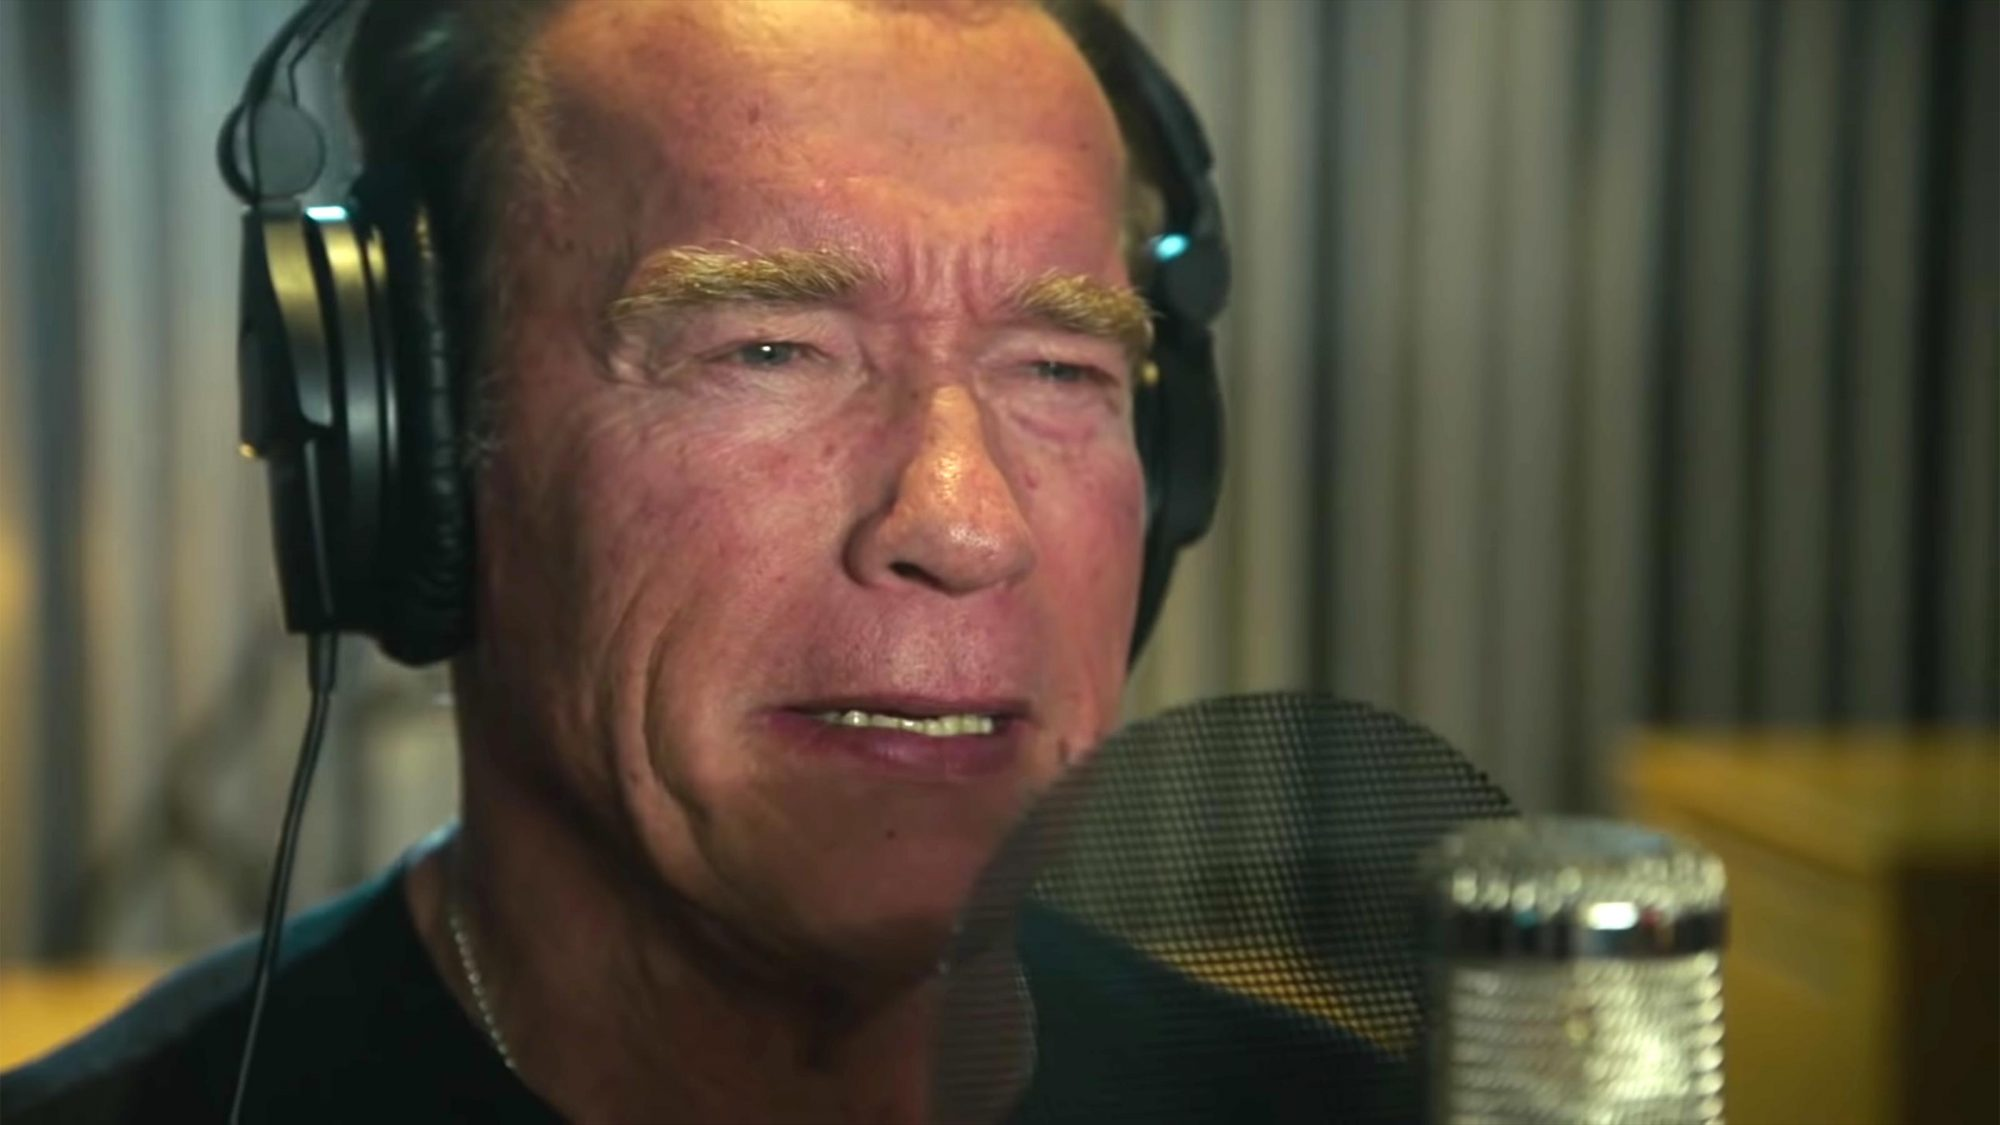 Andreas Gabalier feat. Arnold Schwarzenegger - Pump it Up - The Motivation Song (screen grab) https://www.youtube.com/watch?v=Z7i8NgOPOK8 Andreas Gabalier/YouTube